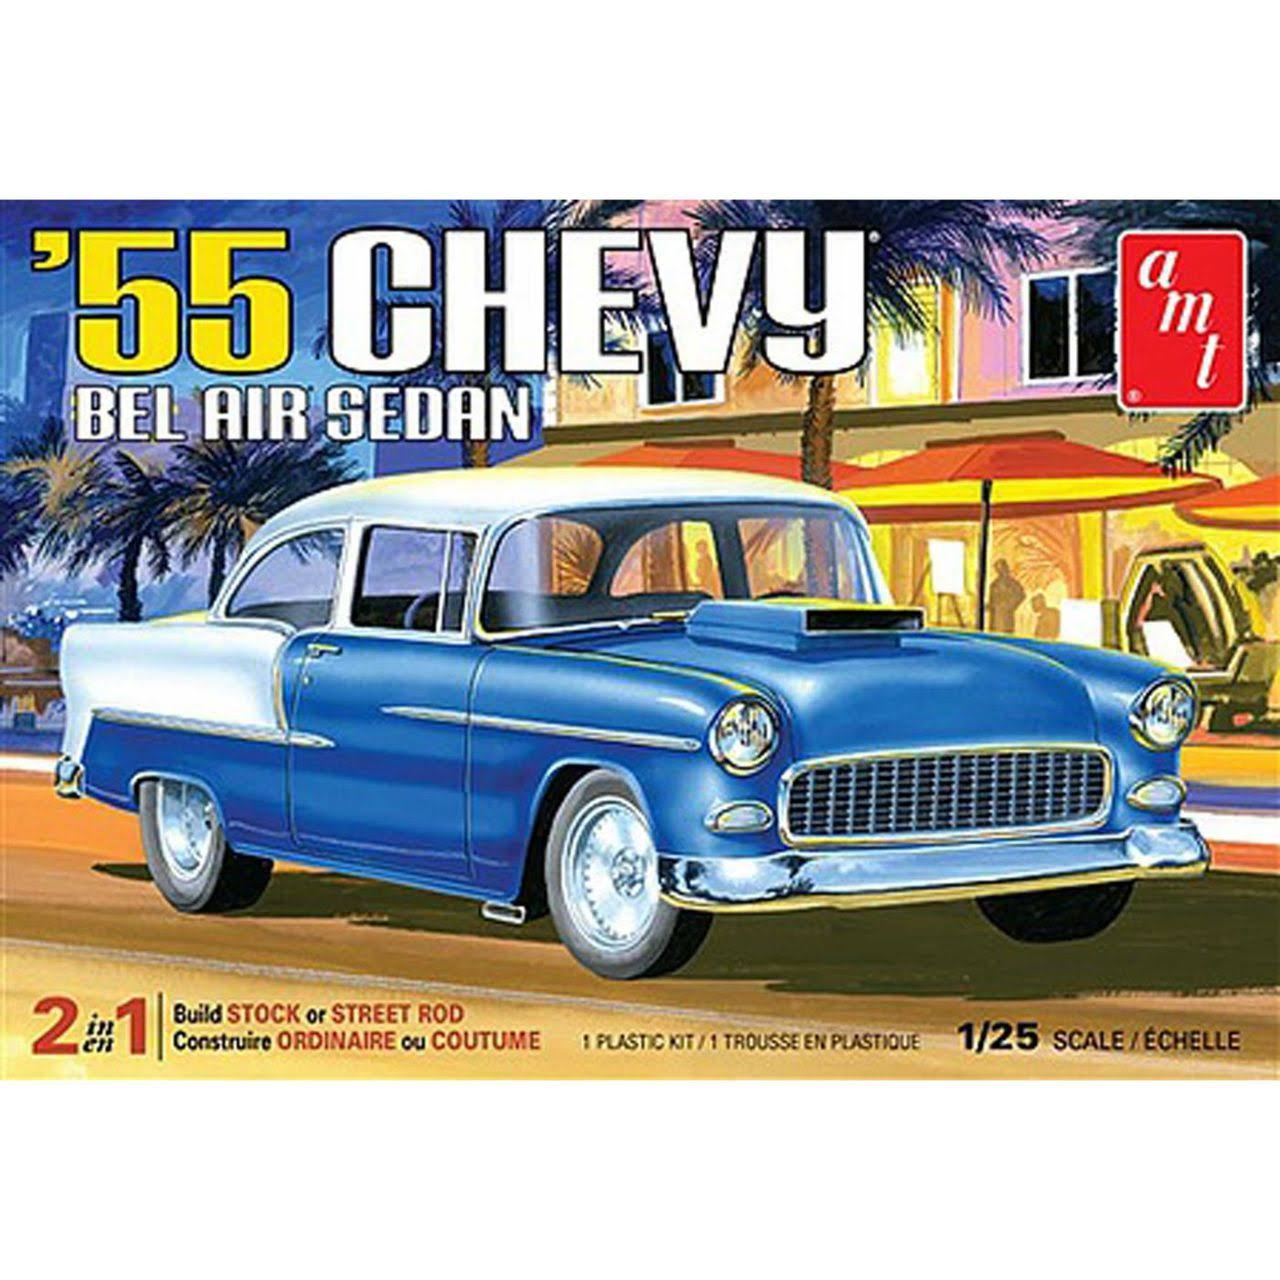 AMT 1955 Chevy Bel Air Sedan Plastic Model Kit - 1/25 Scale